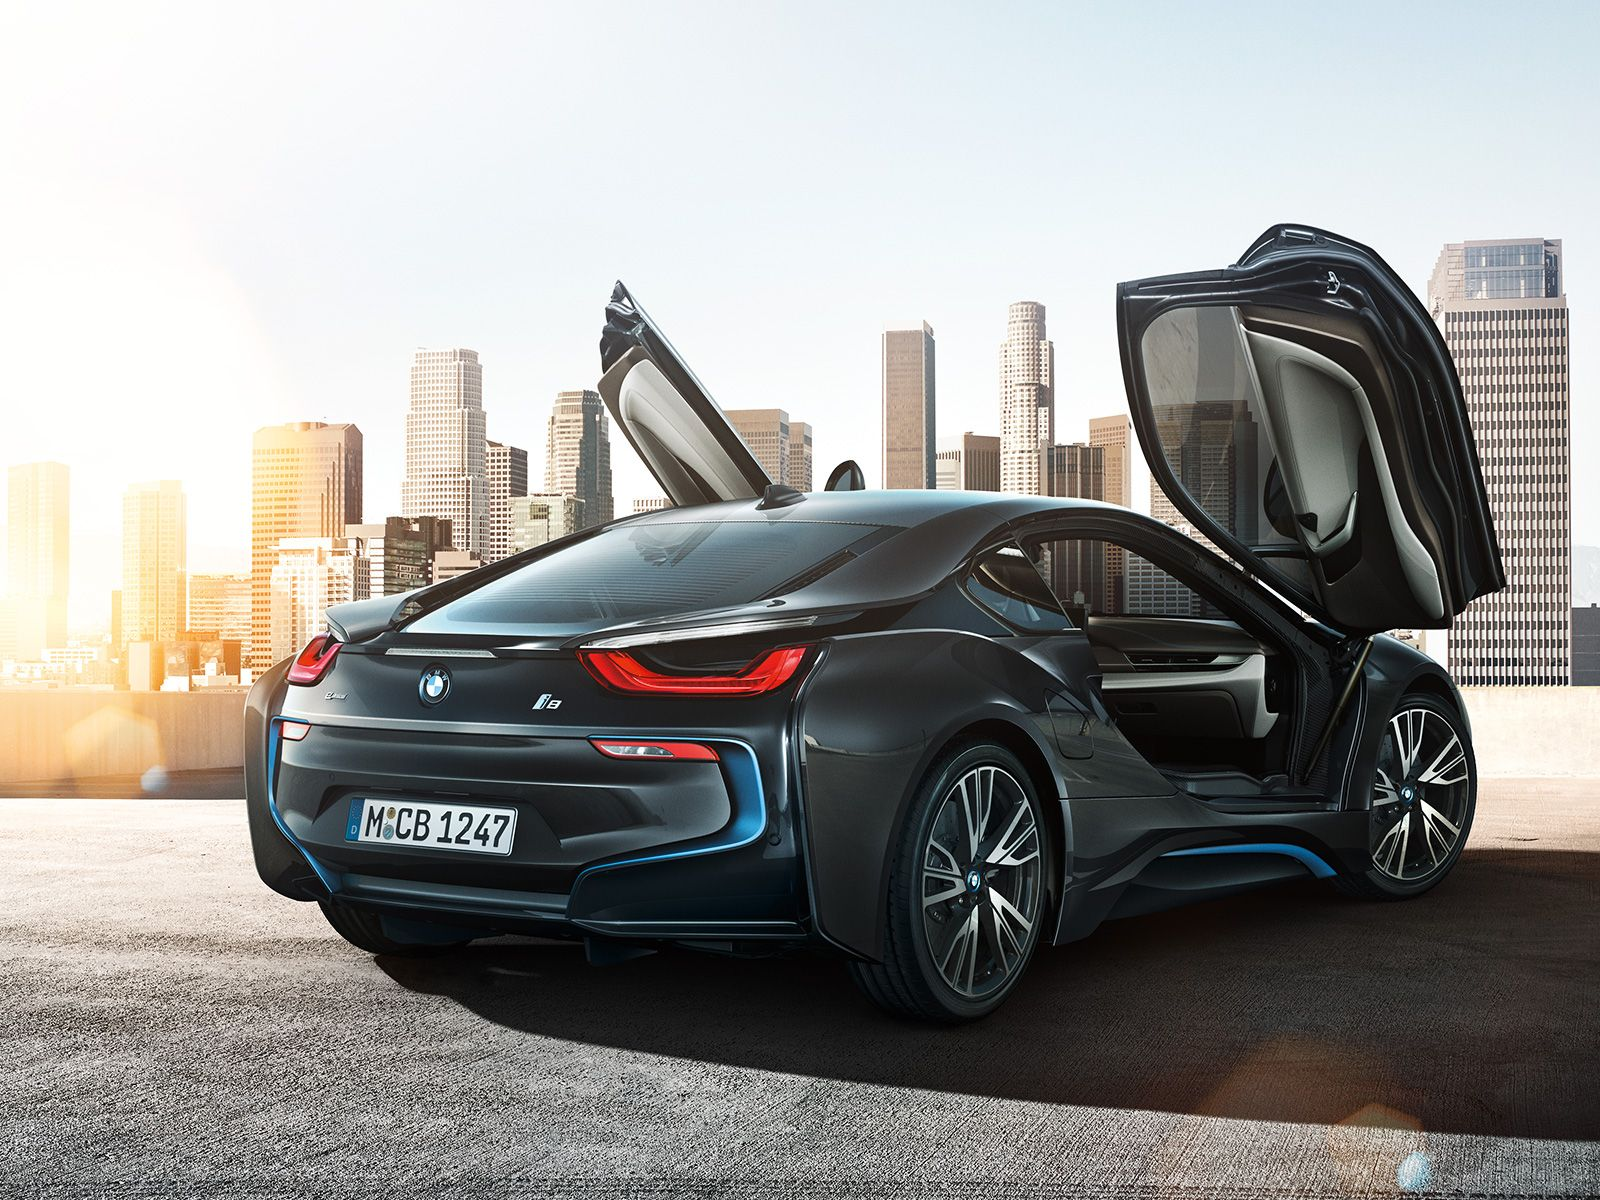 The bmw is ready to revolutionise its vehicle class as the first sports car with the consumption and emission values of a compact car